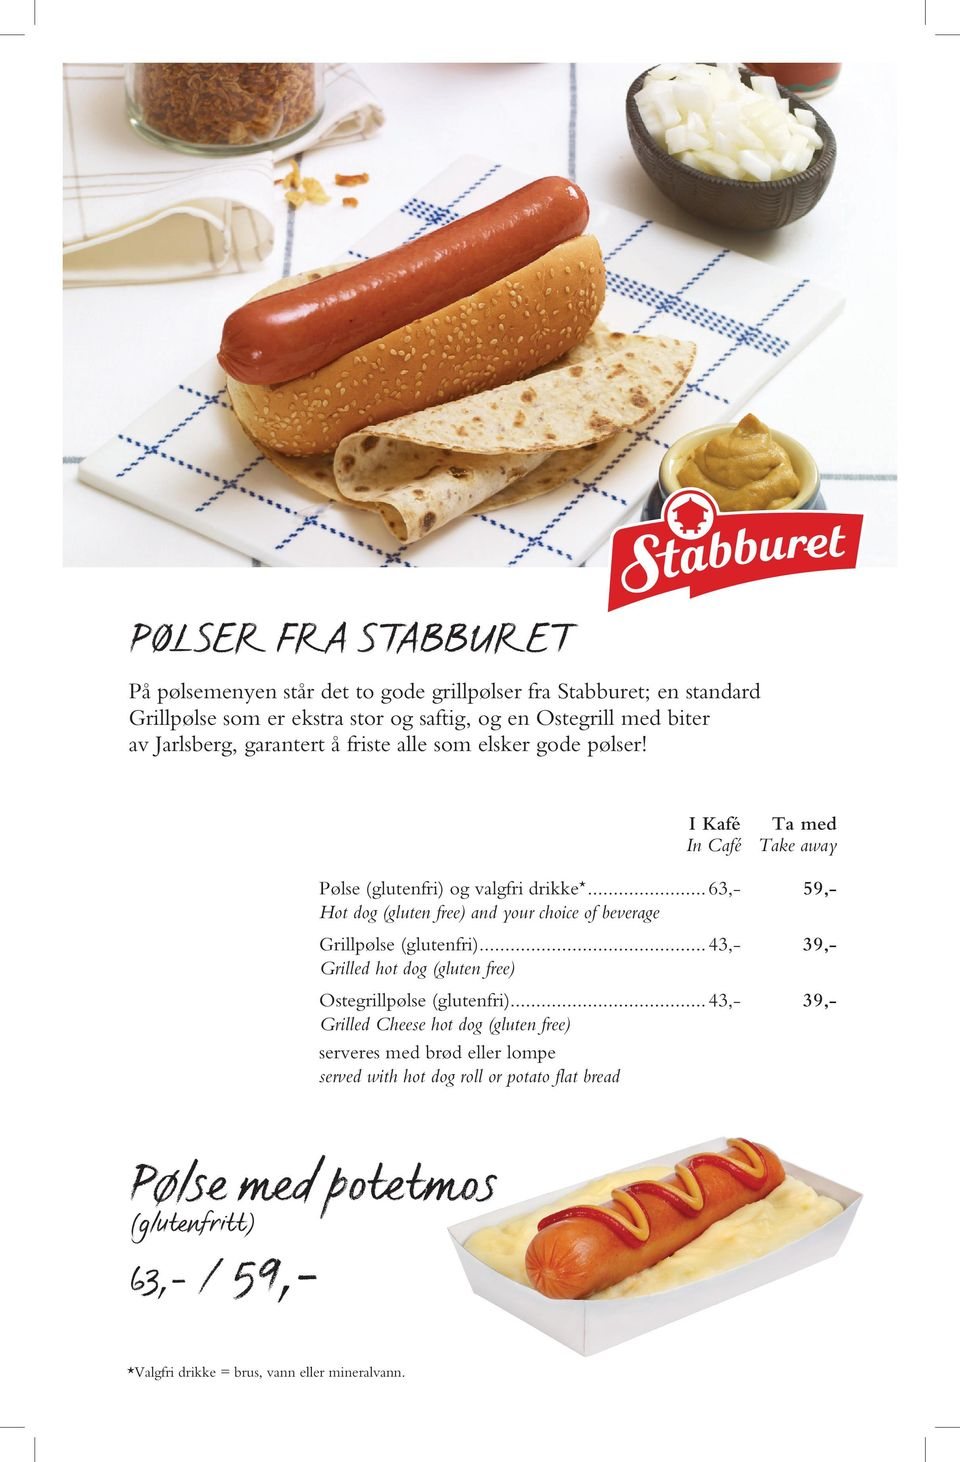 ..63,- 59,- Hot dog (gluten free) and your choice of beverage Grillpølse (glutenfri)...43,- 39,- Grilled hot dog (gluten free) Ostegrillpølse (glutenfri).